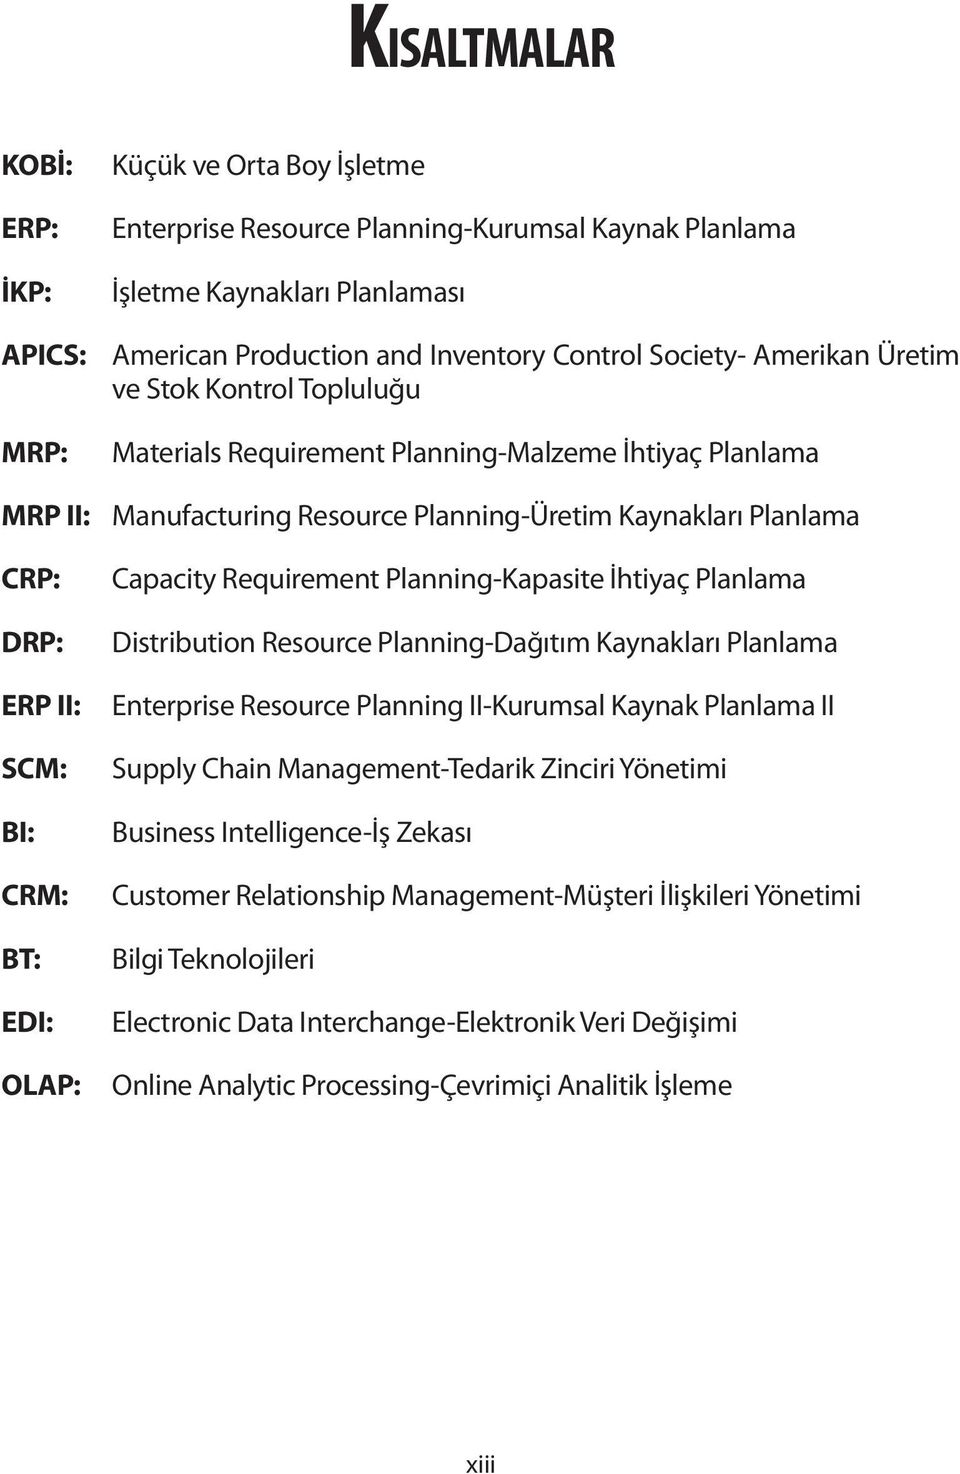 BI: CRM: BT: EDI: OLAP: Capacity Requirement Planning-Kapasite İhtiyaç Planlama Distribution Resource Planning-Dağıtım Kaynakları Planlama Enterprise Resource Planning II-Kurumsal Kaynak Planlama II